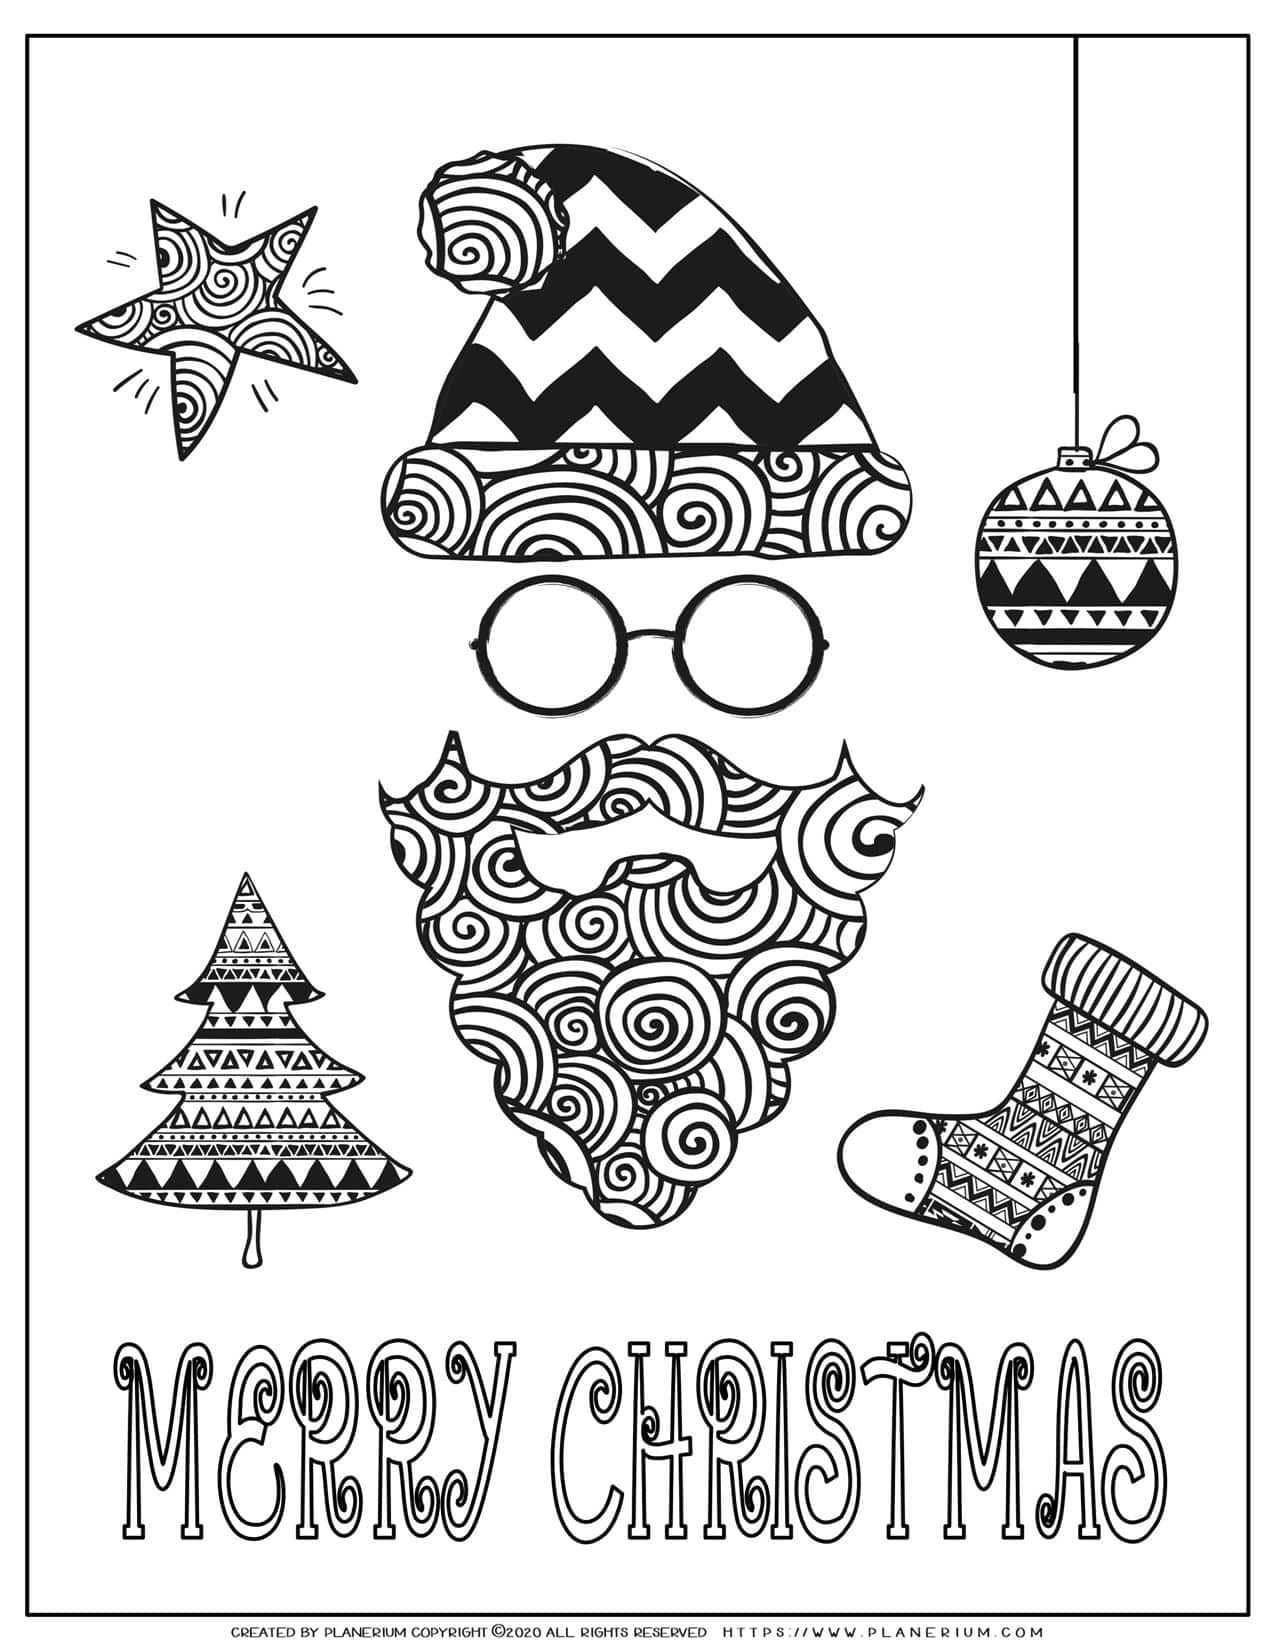 Christmas Coloring Pages - Merry Christmas Poster - Santa | Planerium